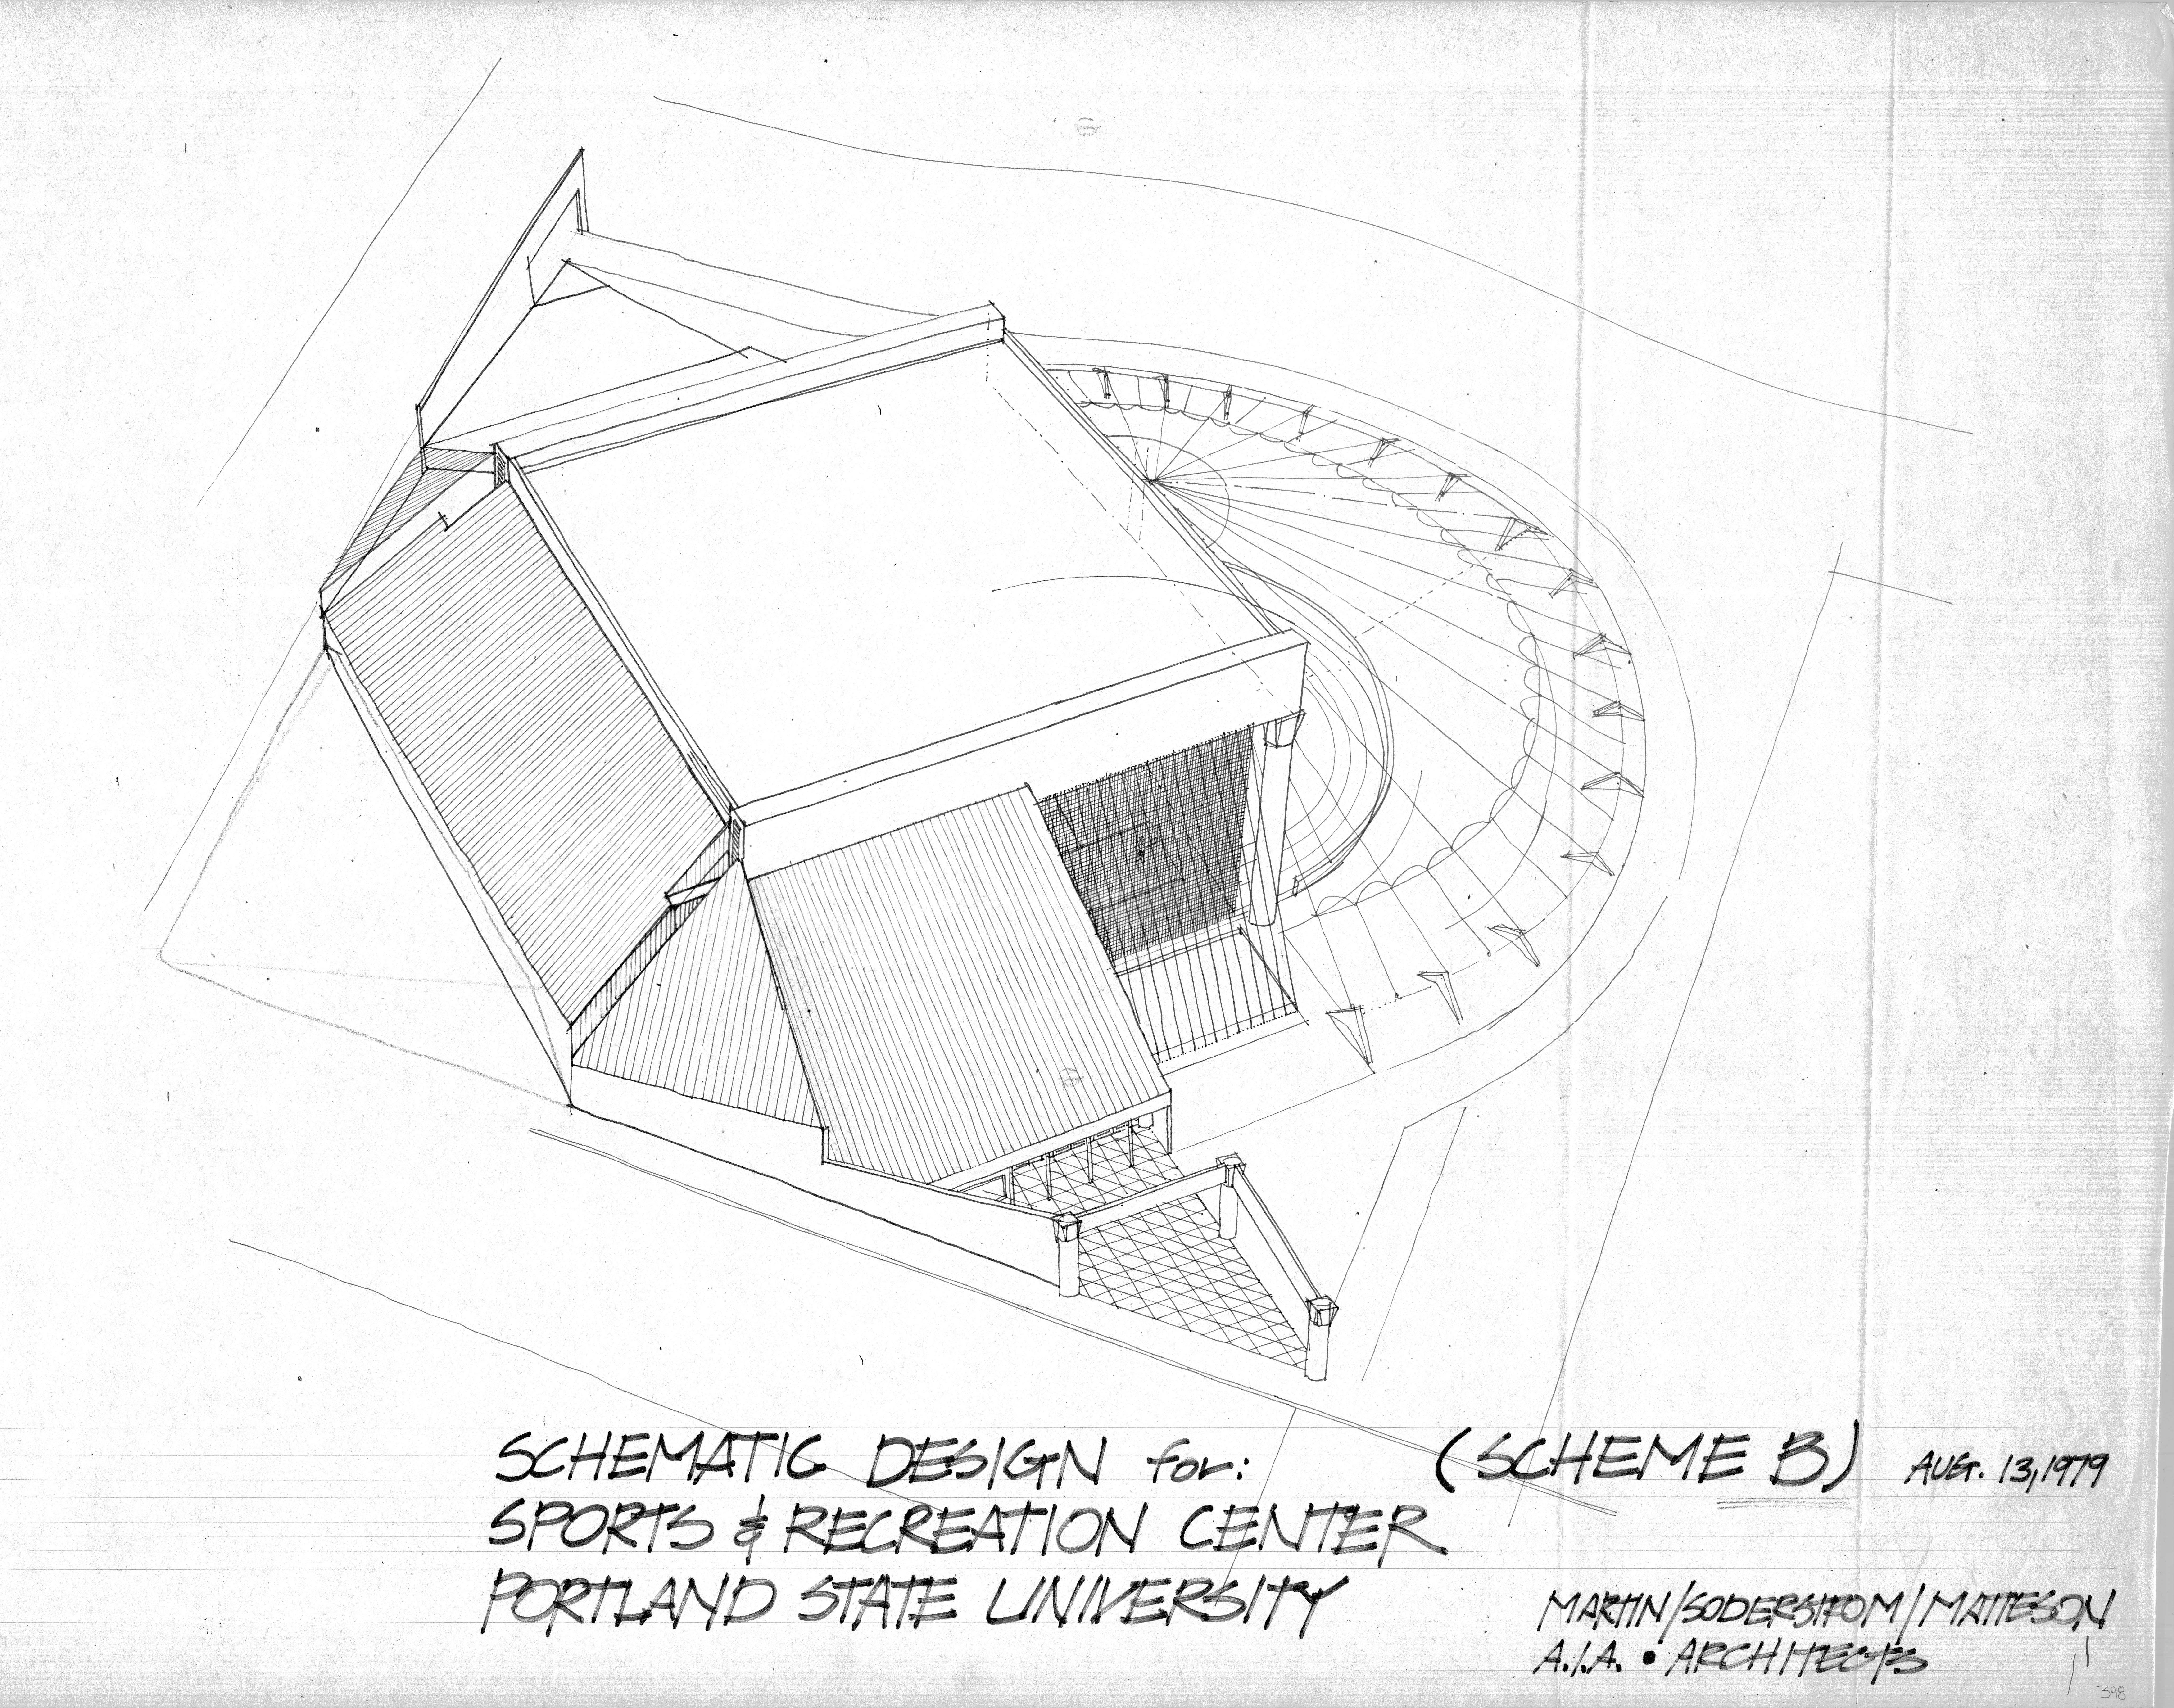 Design for a sports and recreation center